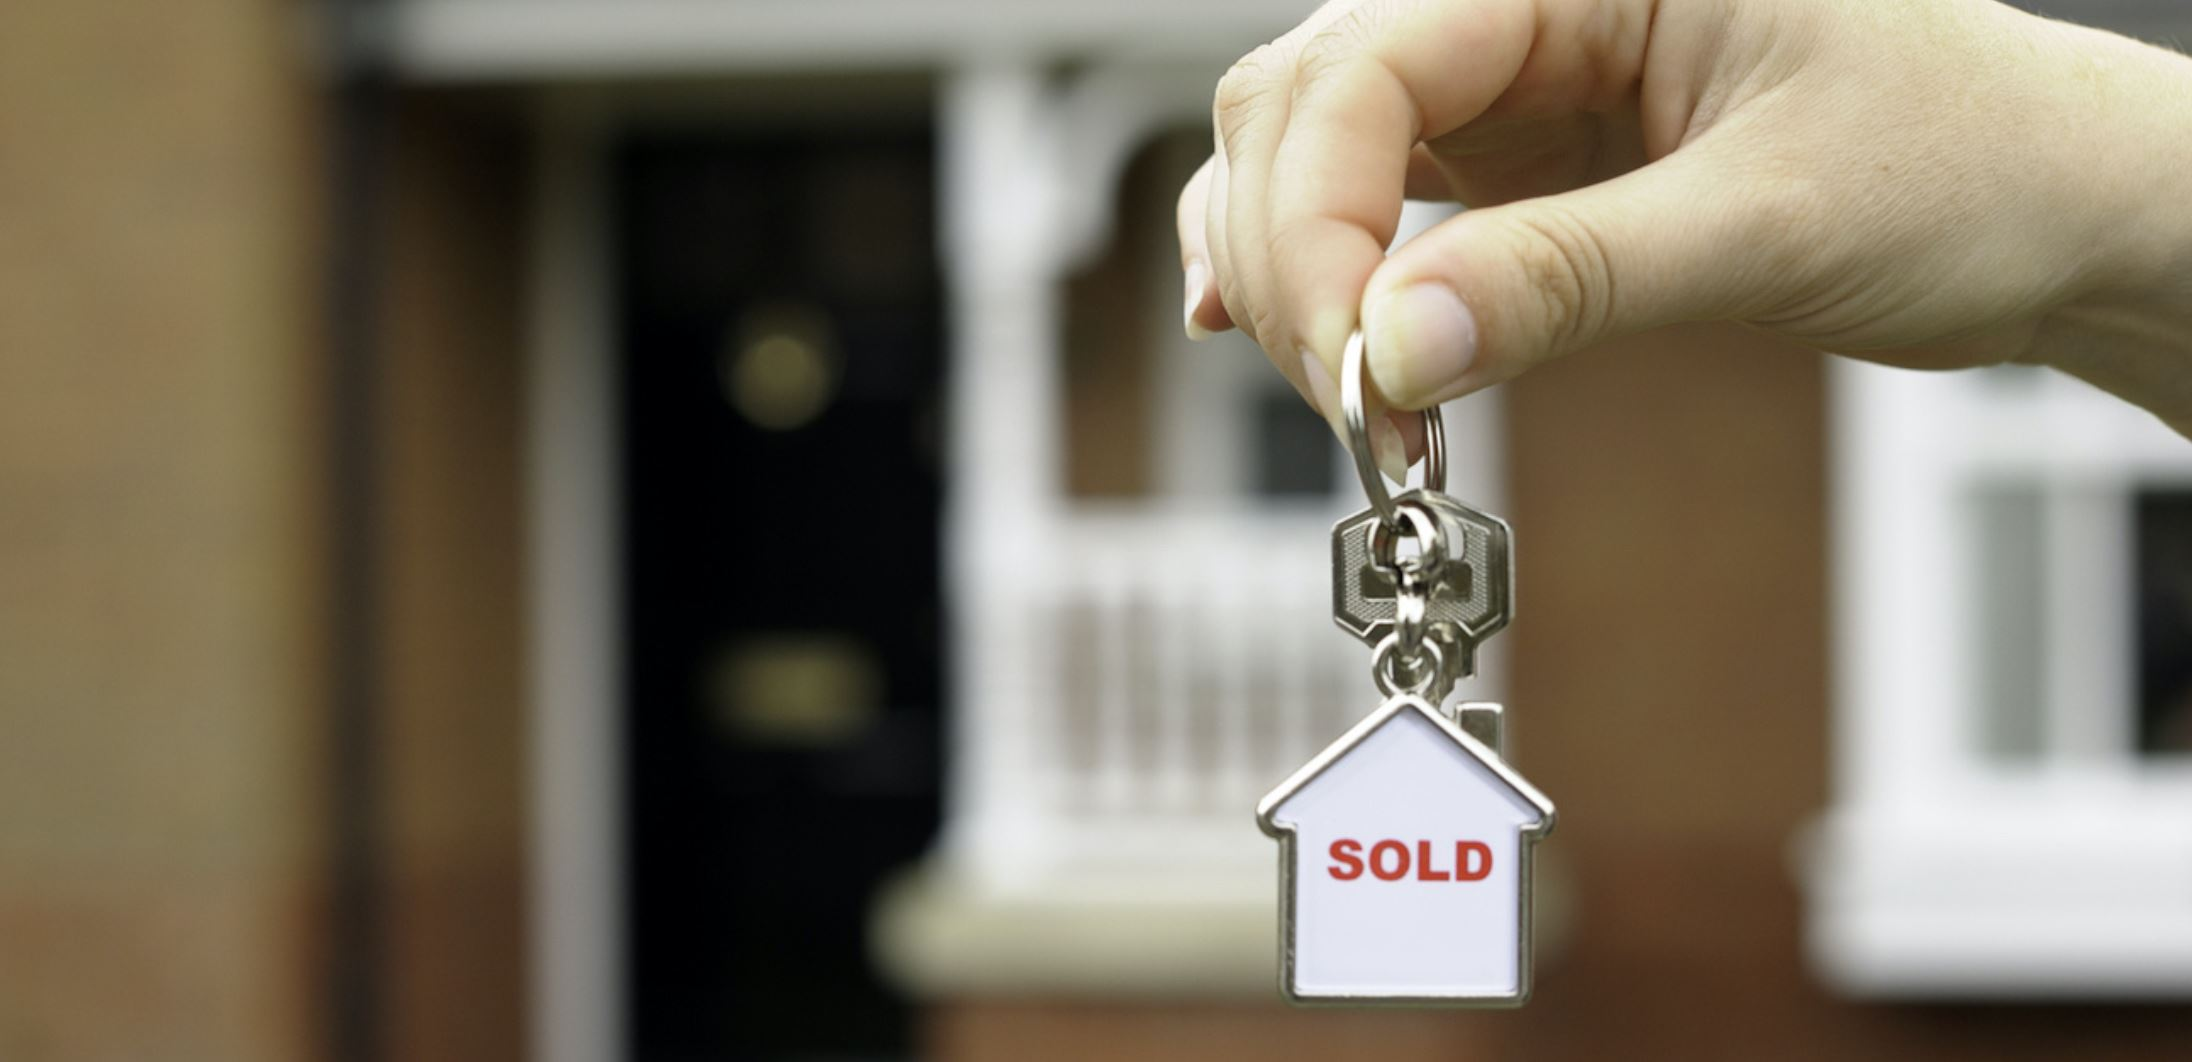 Realtor Magazine 2021 06 12 More than 8 of 10 homes sold at or over list price recently after going through the China COVID-19 Coronavirus plandemic Hoey Team exp Realty